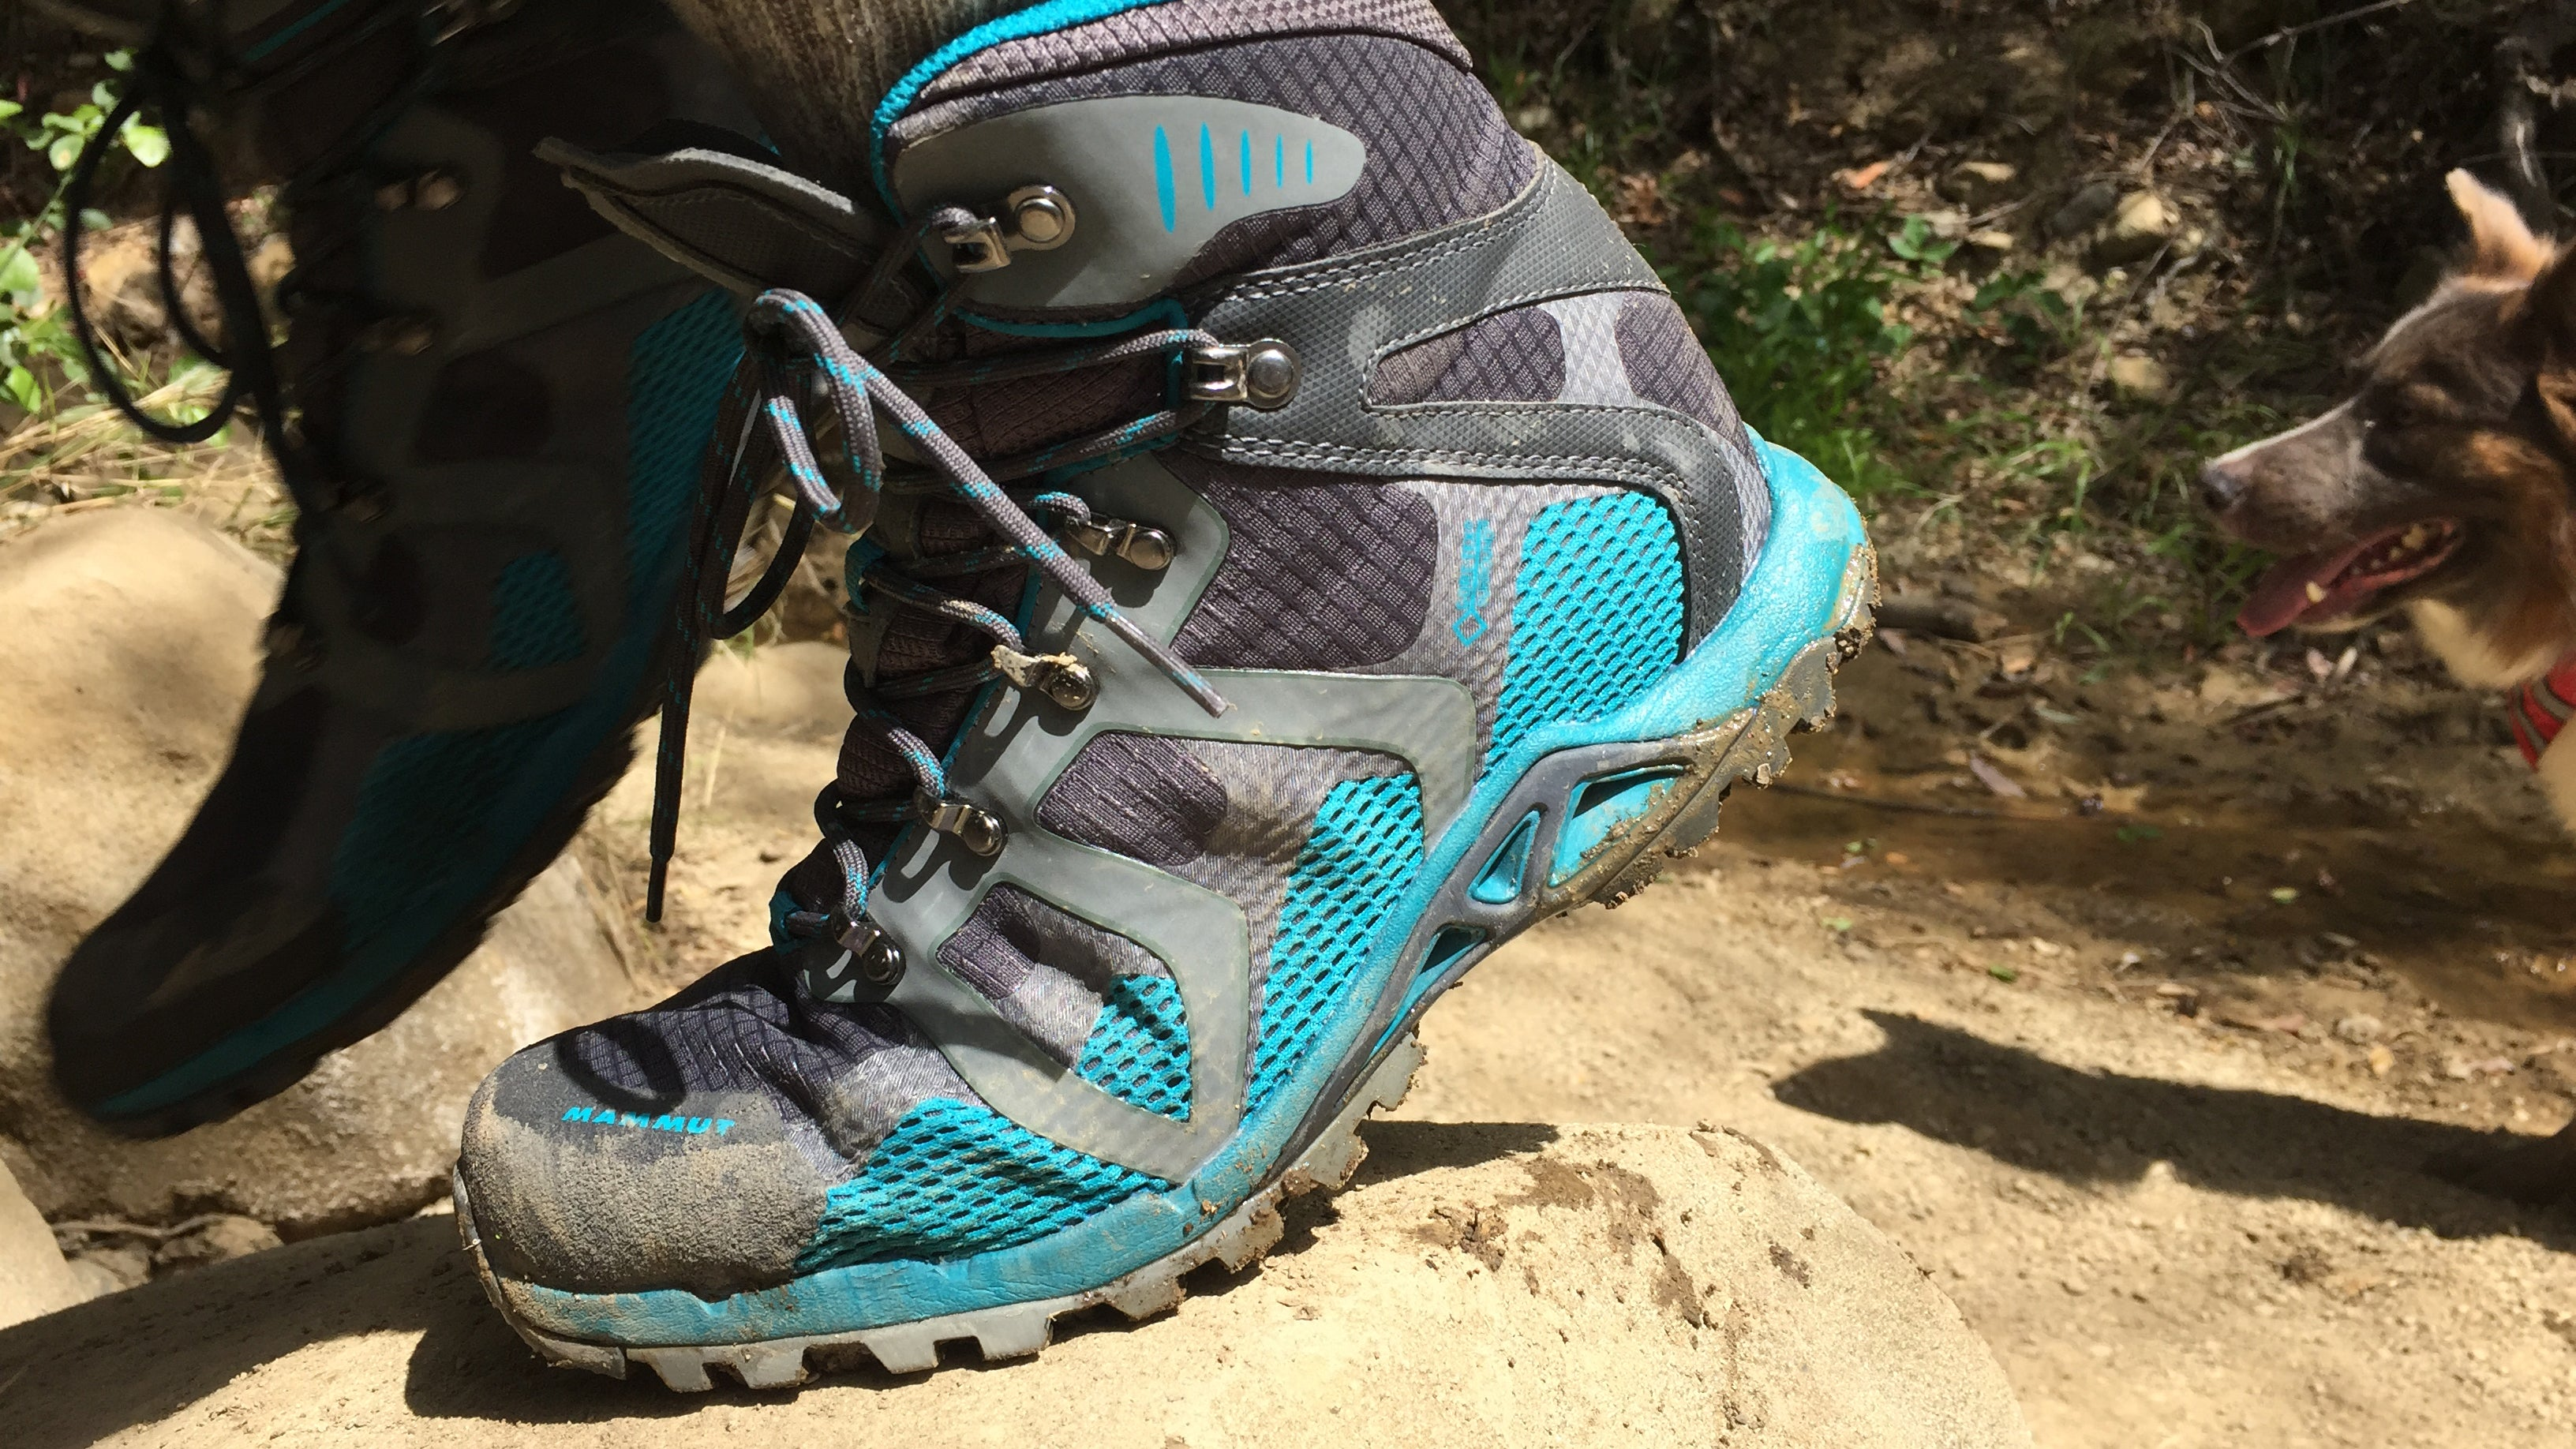 the best all purpose hiking boots for gizmodo australia